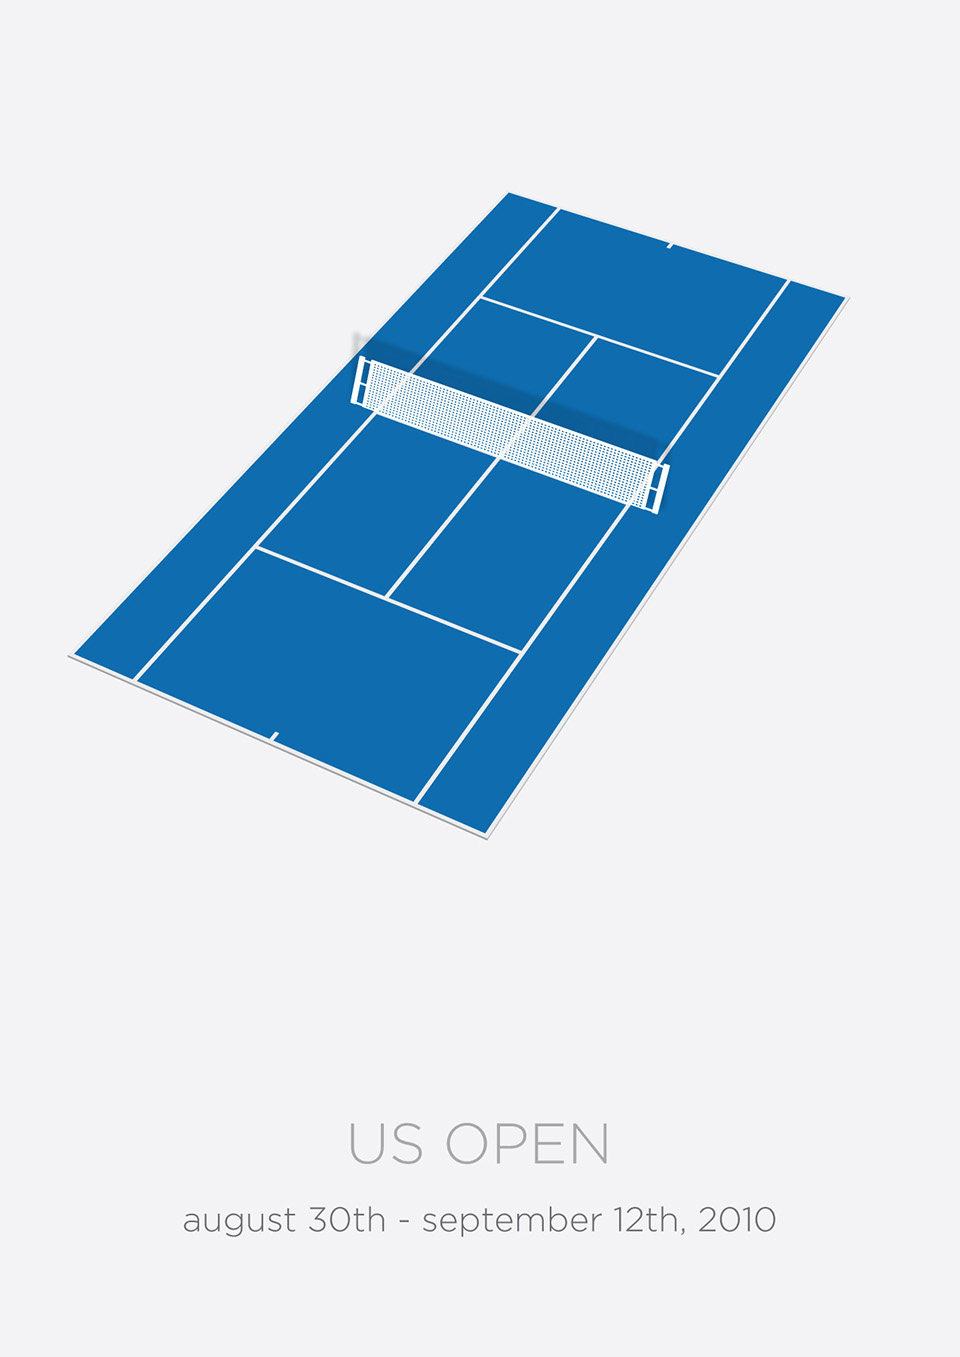 grand slams 2010 - us open